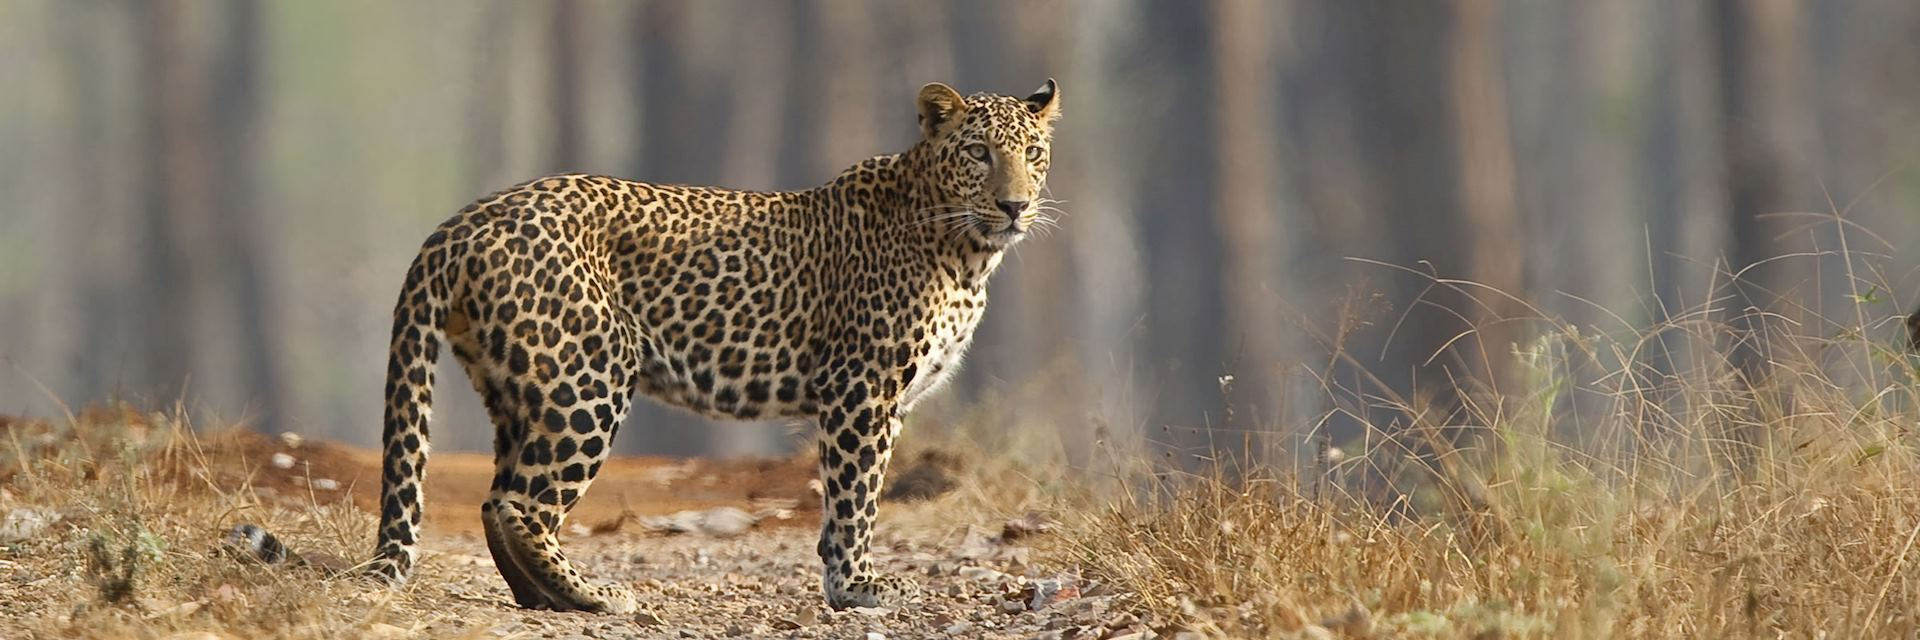 Leopard in Nagarhole National Park in the southern state of Karnataka